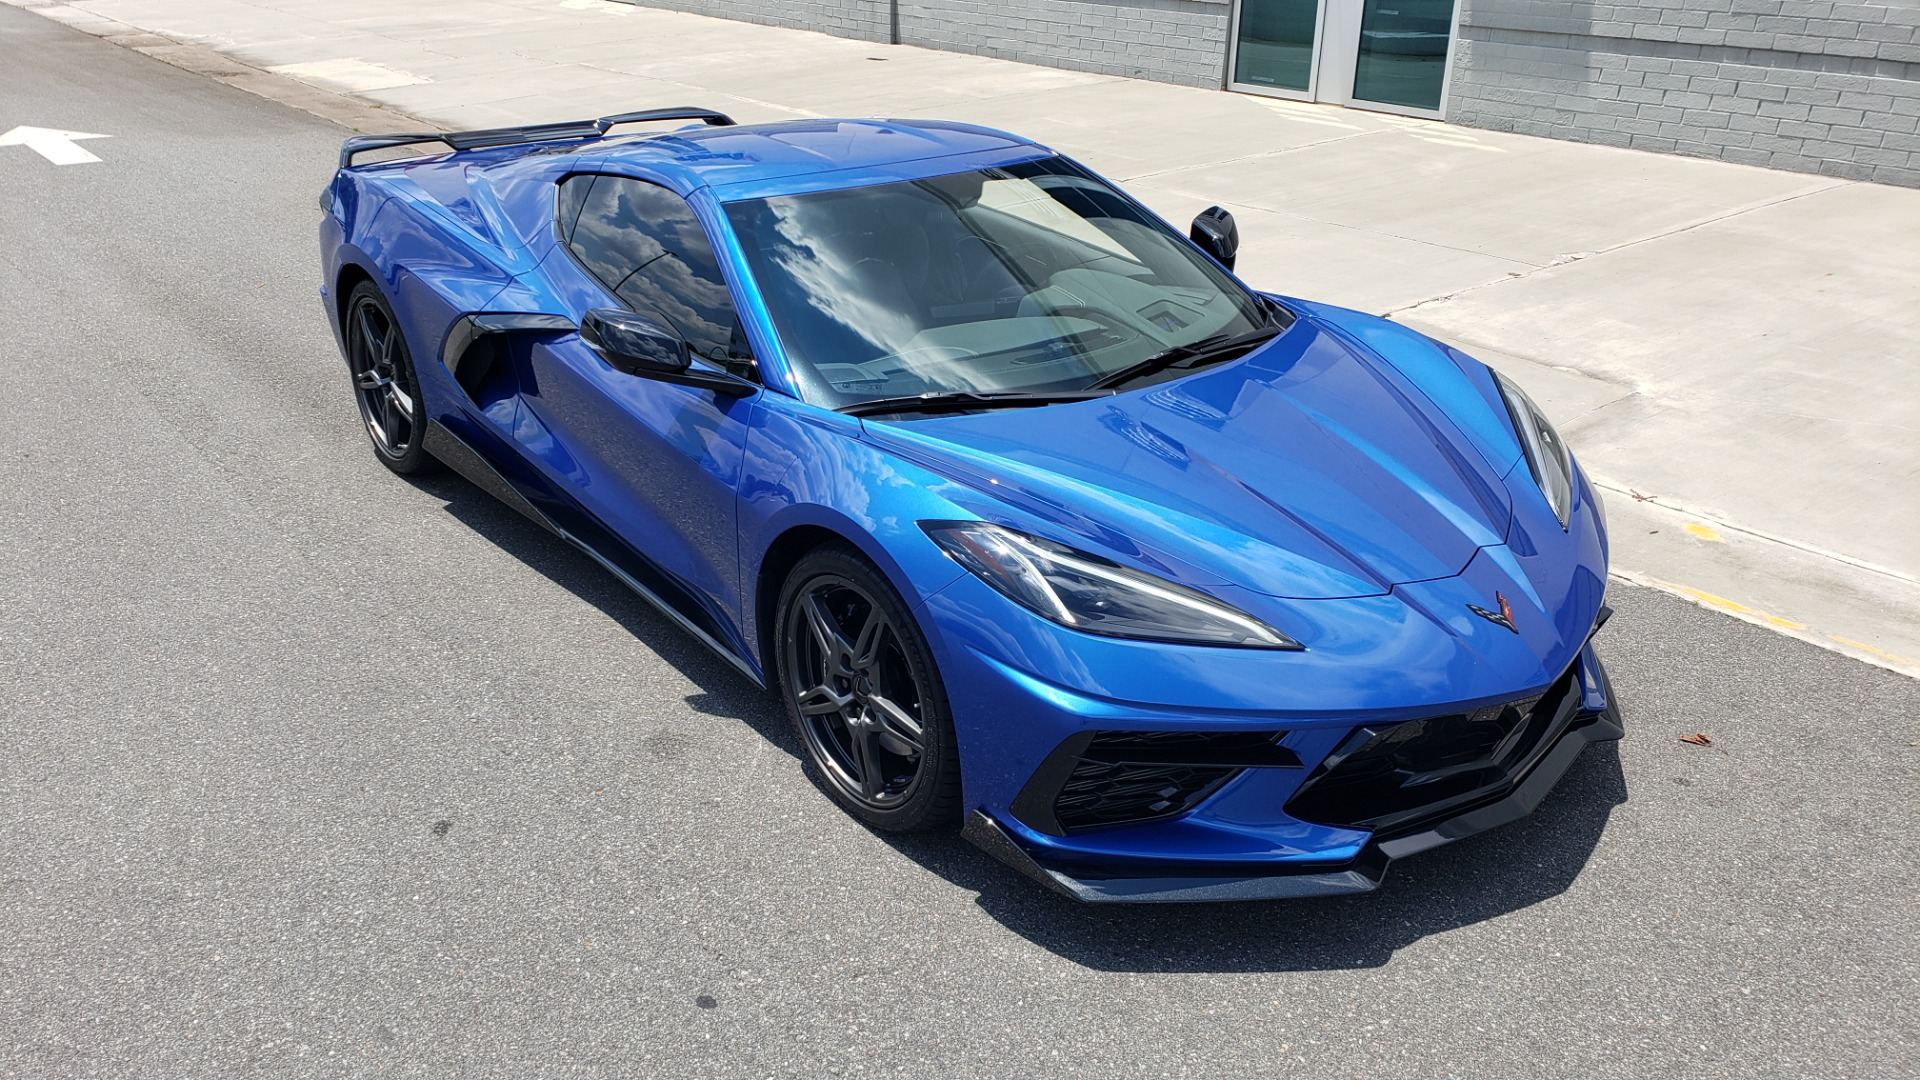 Used 2020 Chevrolet CORVETTE C8 STINGRAY COUPE 2LT / PERF & Z51 PKG / NAV / BOSE / 8-SPD AUTO / REARVIEW for sale Sold at Formula Imports in Charlotte NC 28227 10